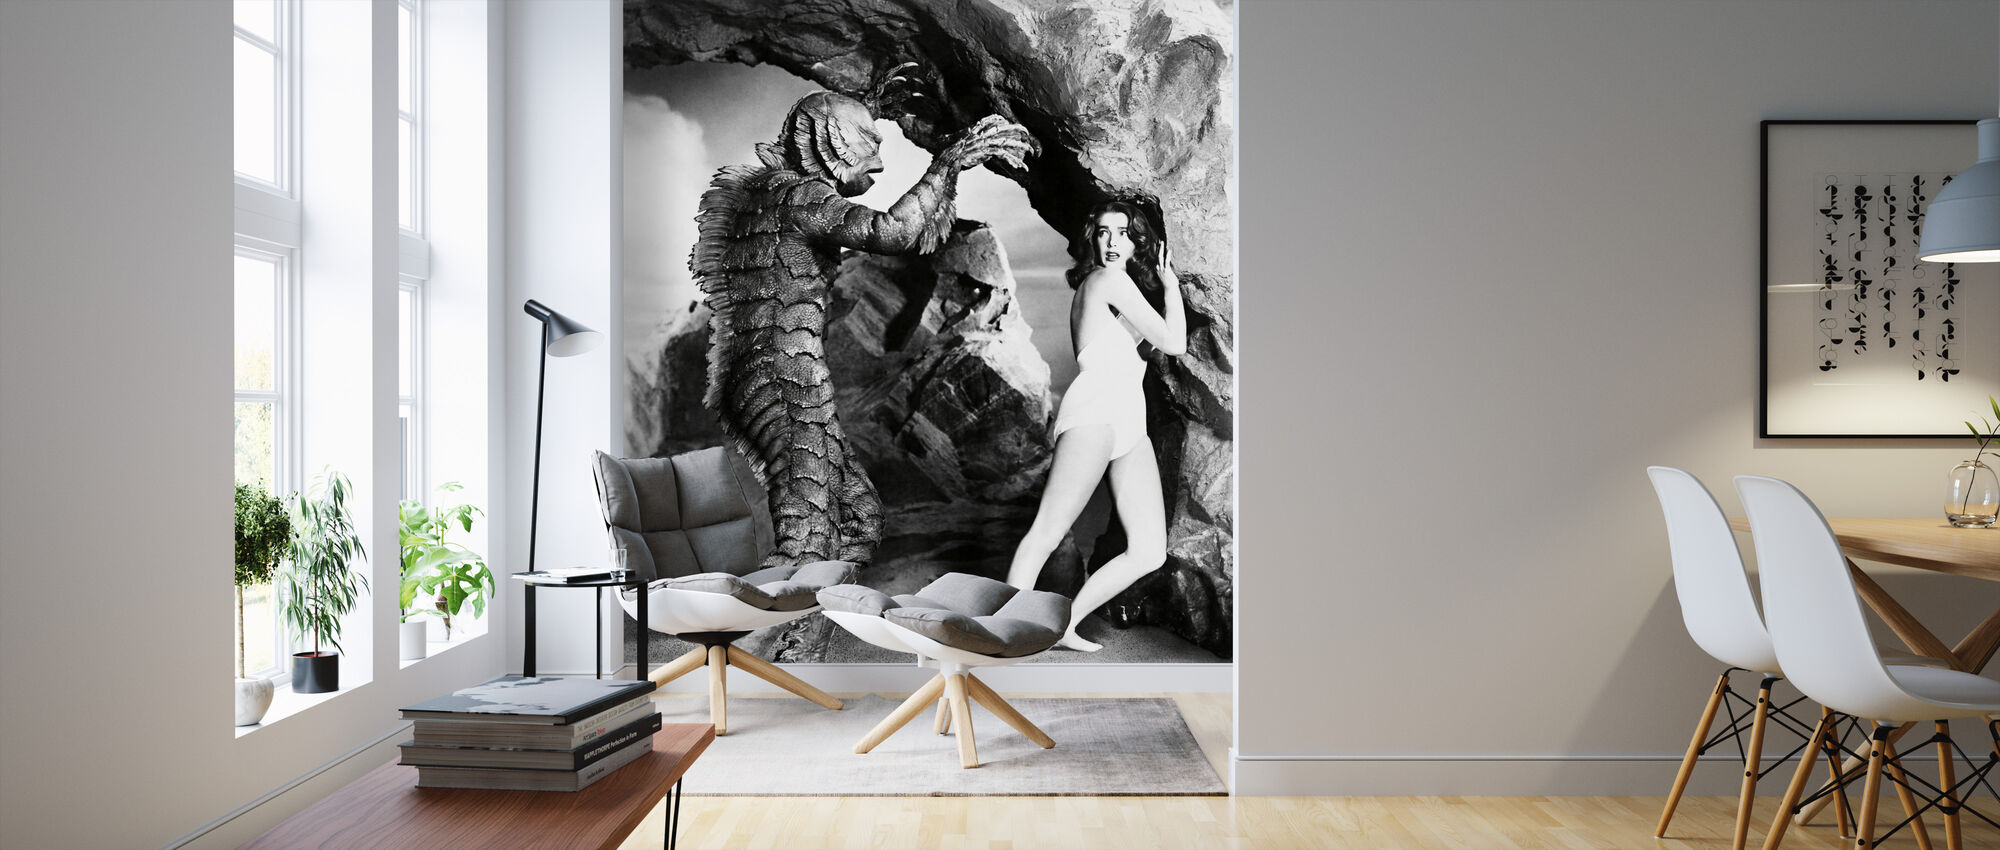 Creature from the Black Lagoon - Wallpaper - Living Room